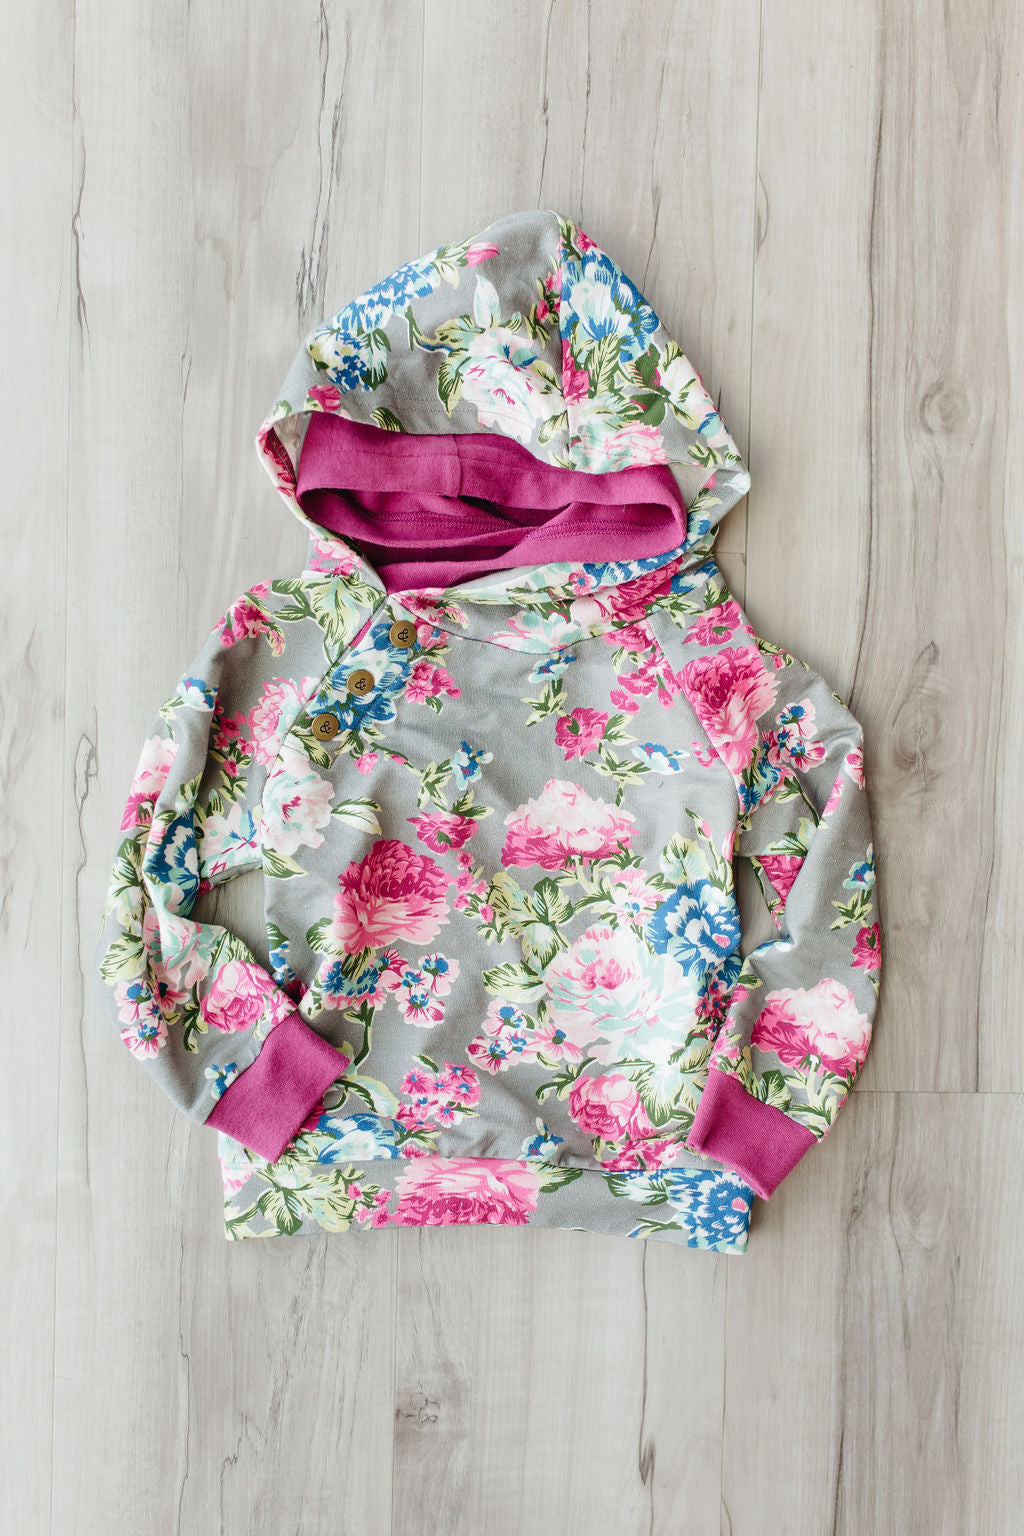 KIDS Doublehood Sweatshirt - Floral Frenzy